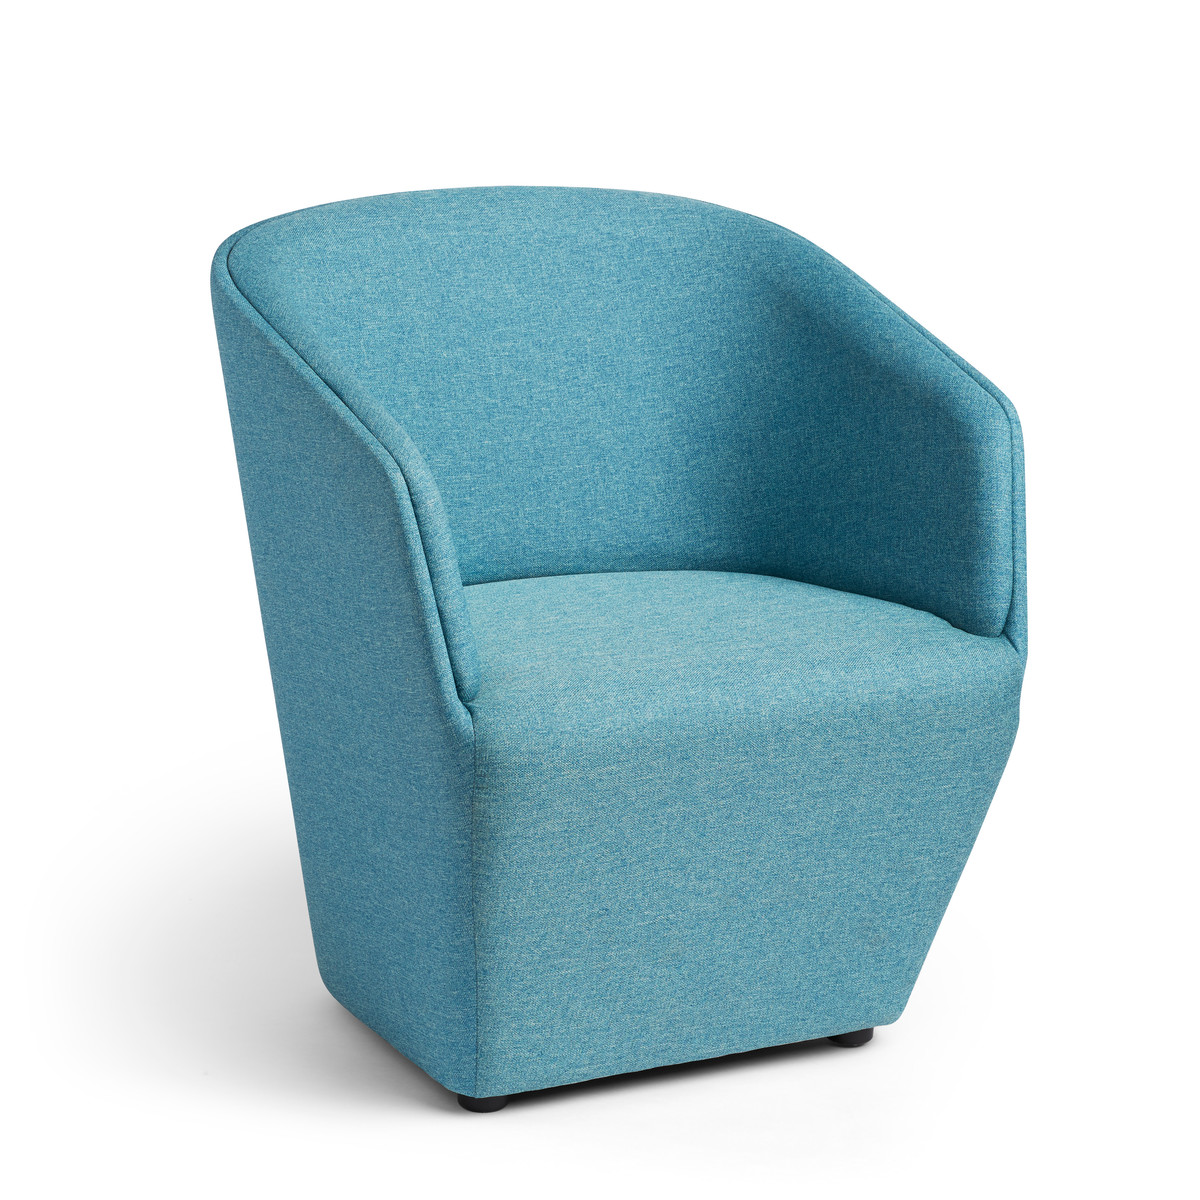 Teal Chair Blue Pitch Club Chair Modern Office Furniture Poppin